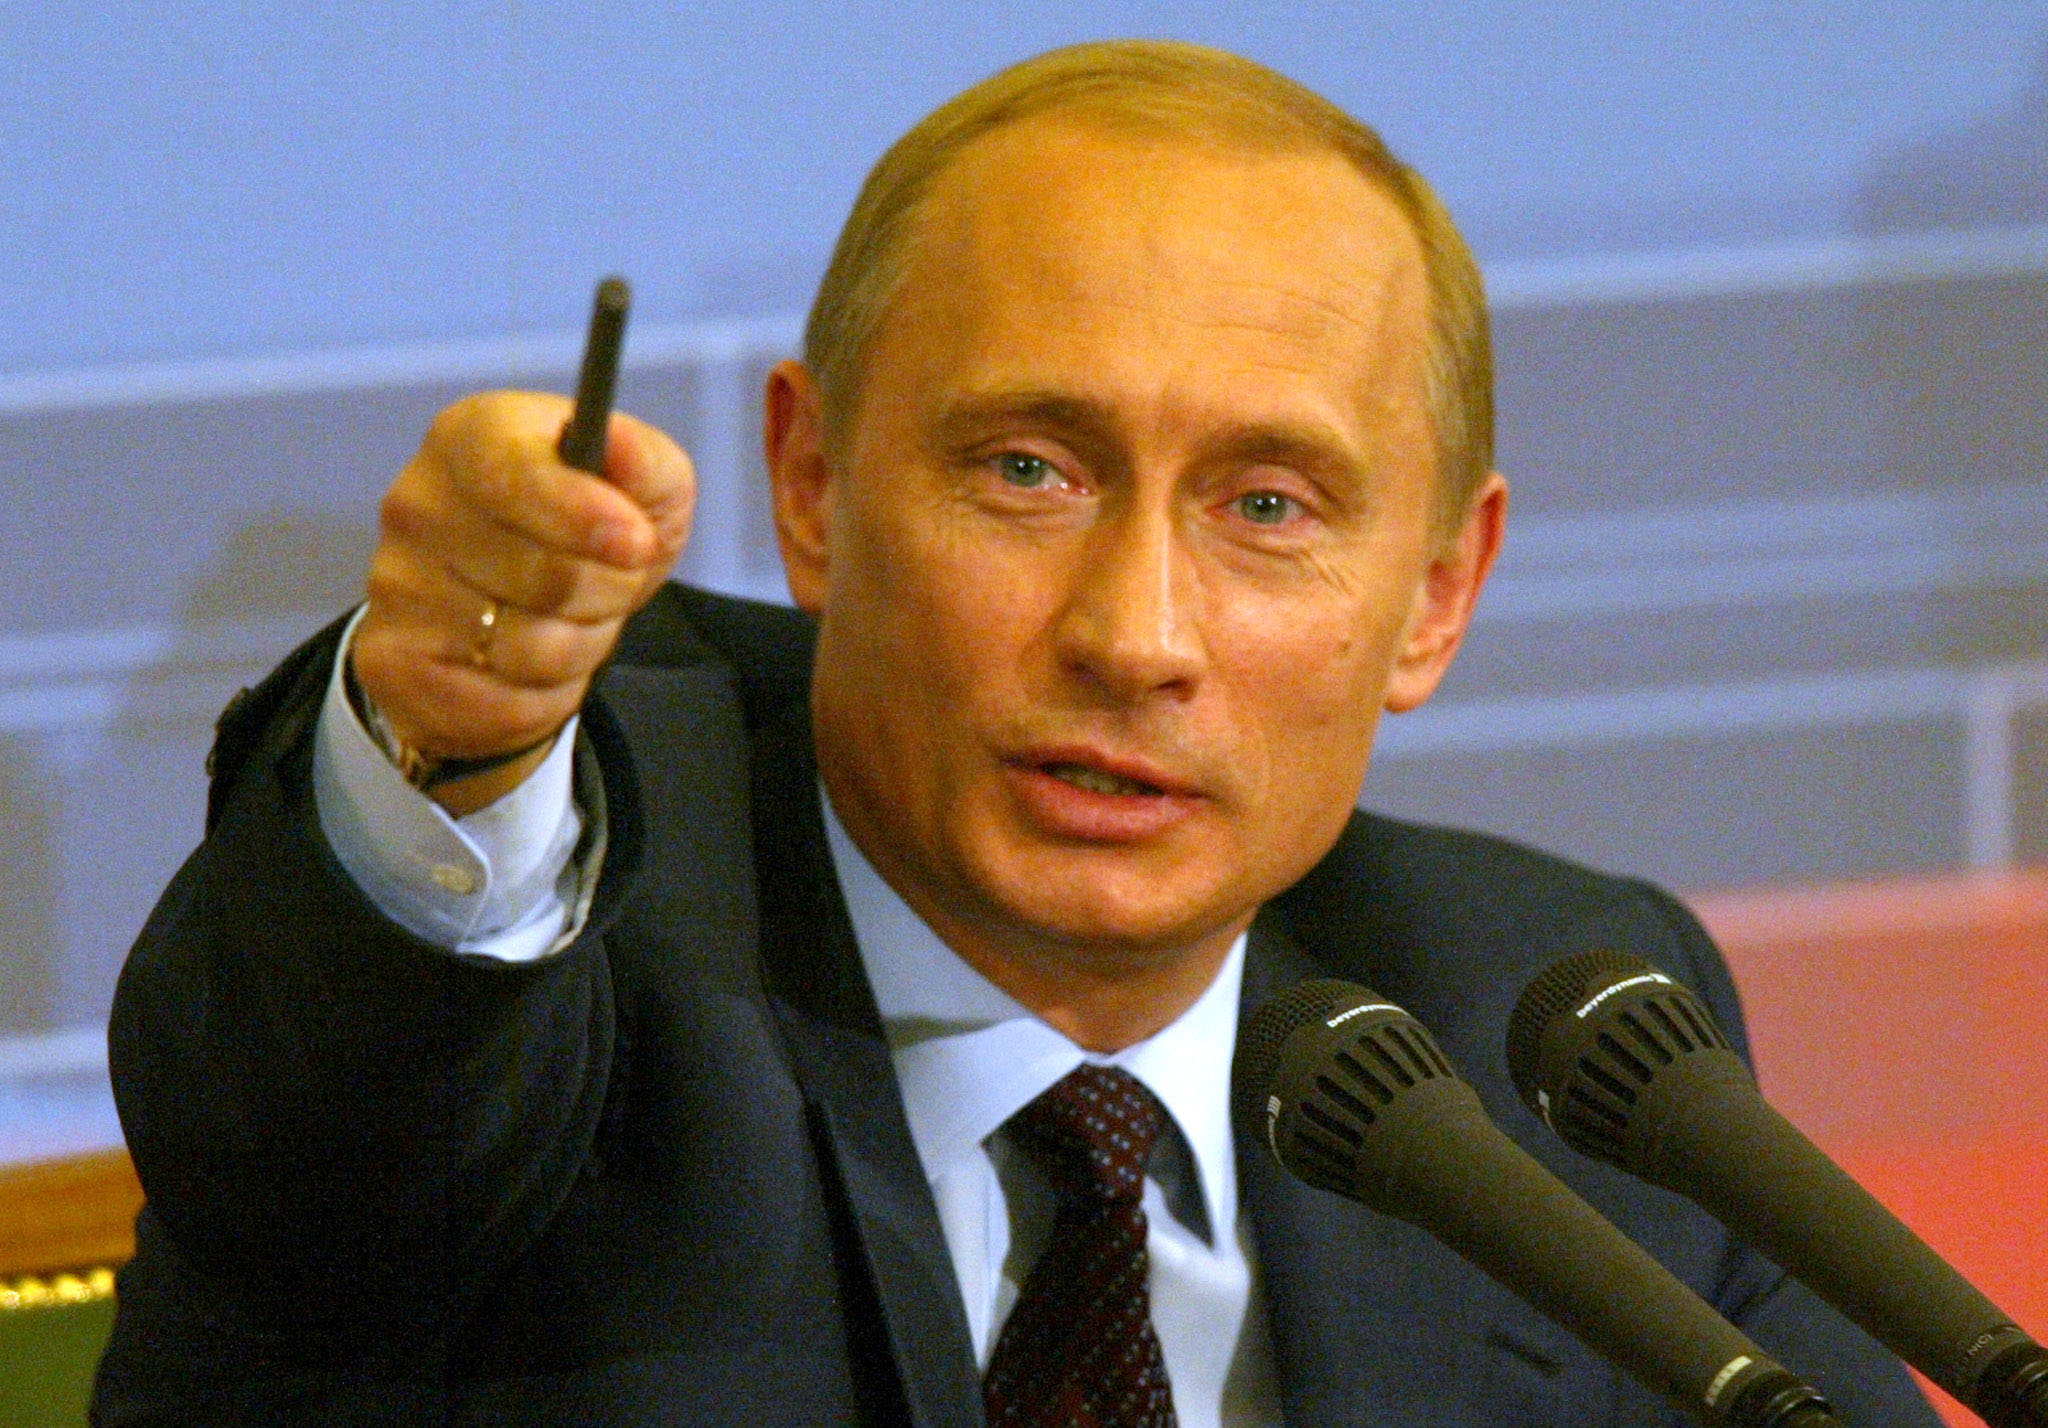 President Vladimir Putin (Source: Wikimedia Commons)